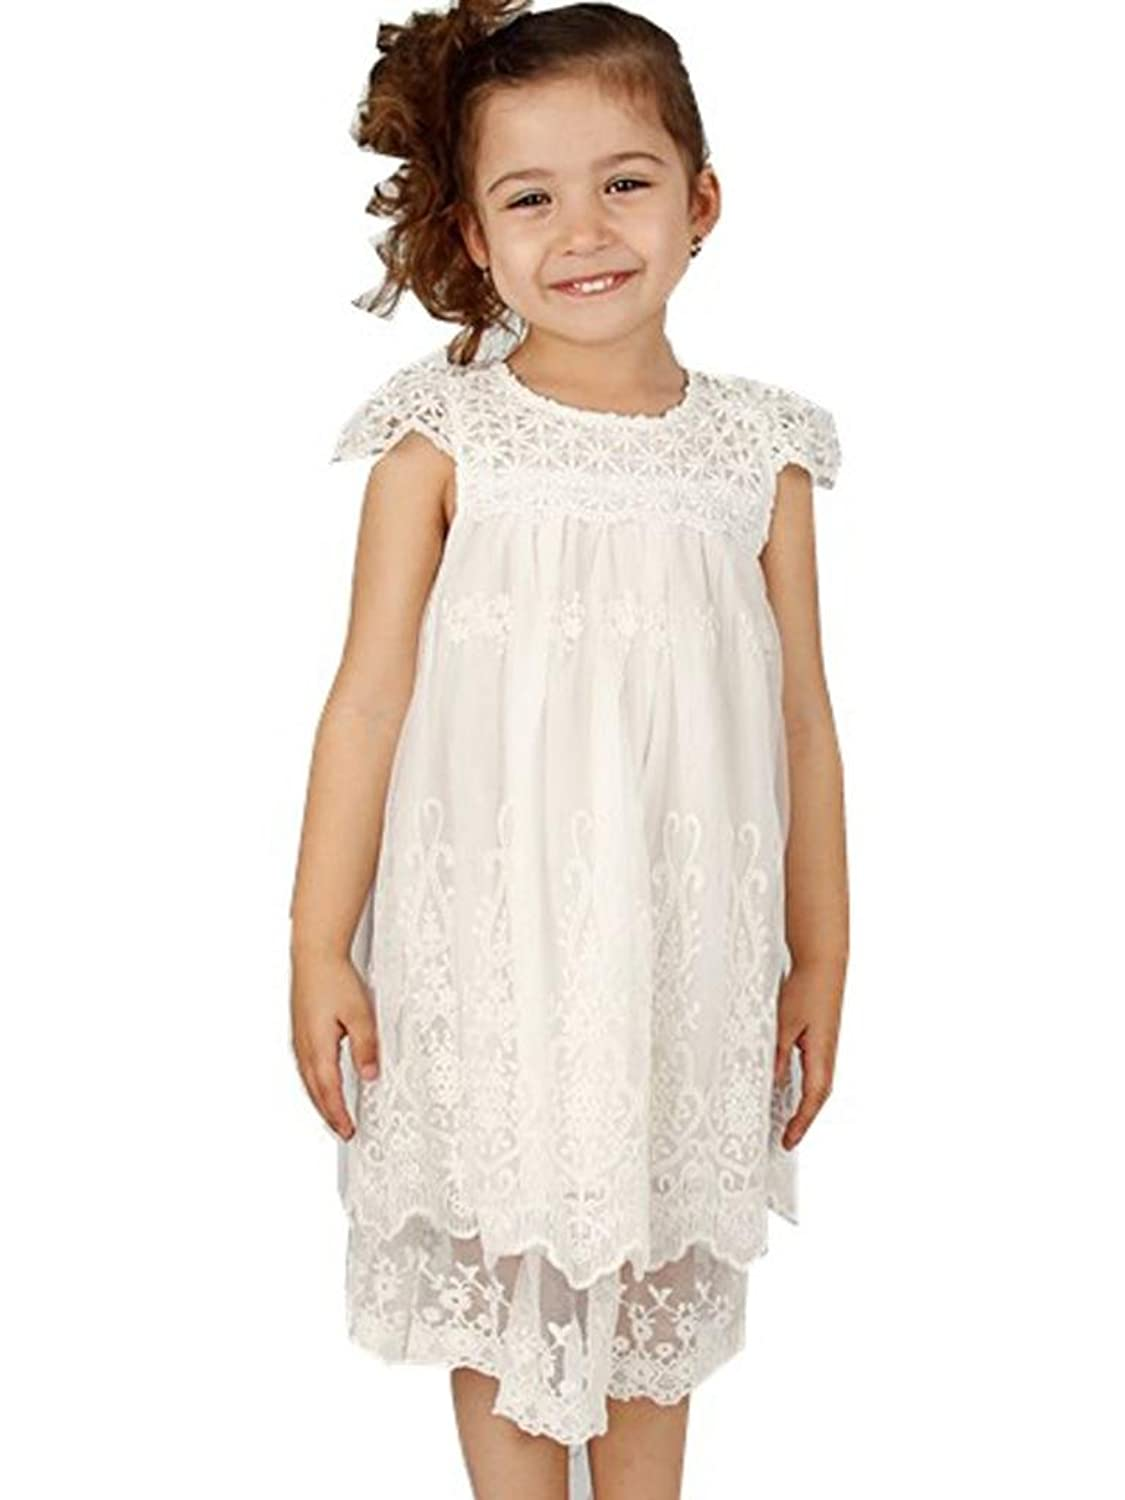 Vintage Style Children's Clothing: Girls, Boys, Baby, Toddler Bow Dream Off White Ivory White Vintage Rustic Baptism Lace Flower Girls Dress $25.99 AT vintagedancer.com